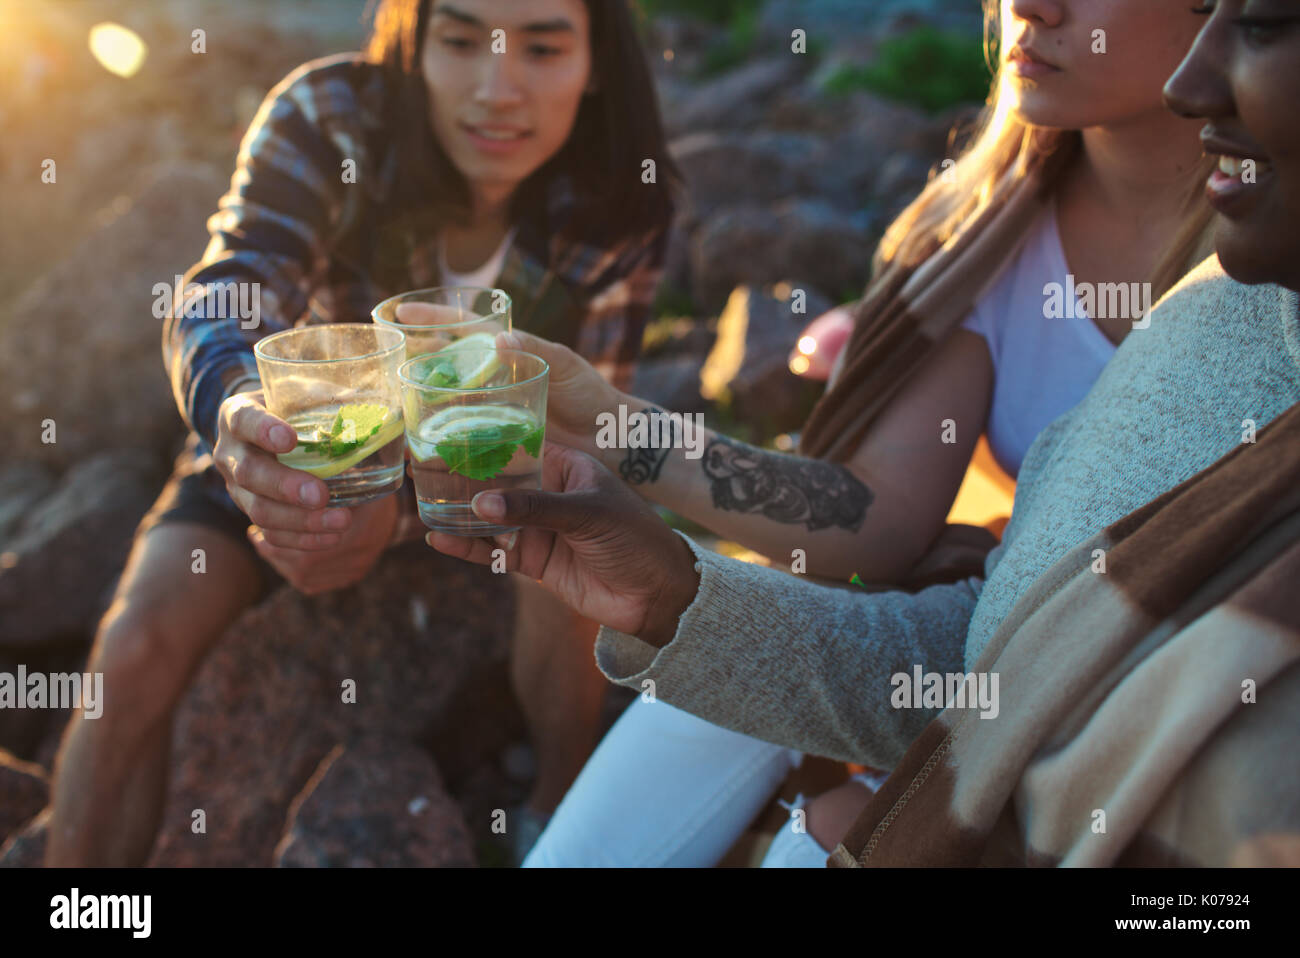 Toasting at beach party - Stock Image